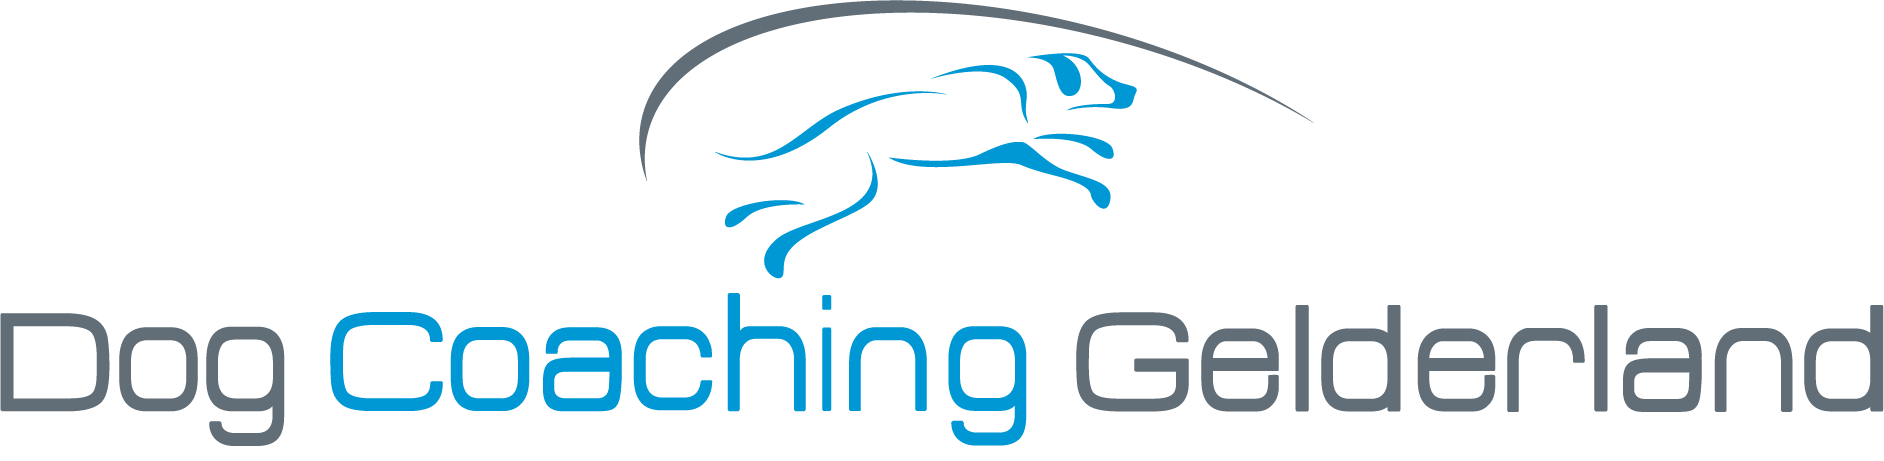 dog coaching gelderland